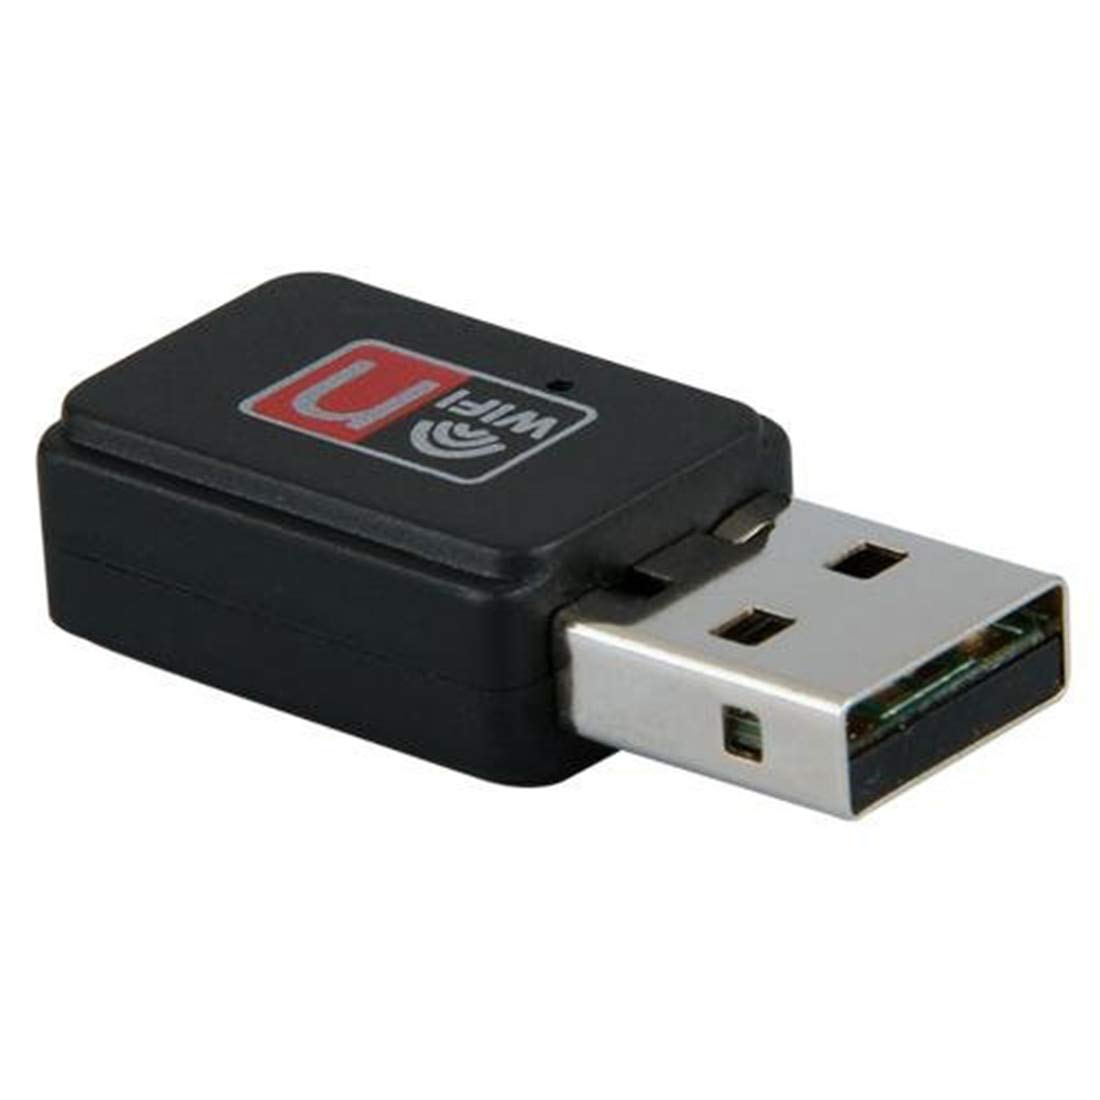 LILIERS Black Mini Dongle 150M 150Mbps USB WiFi Wireless LAN 802.11 N//G//B Adapter